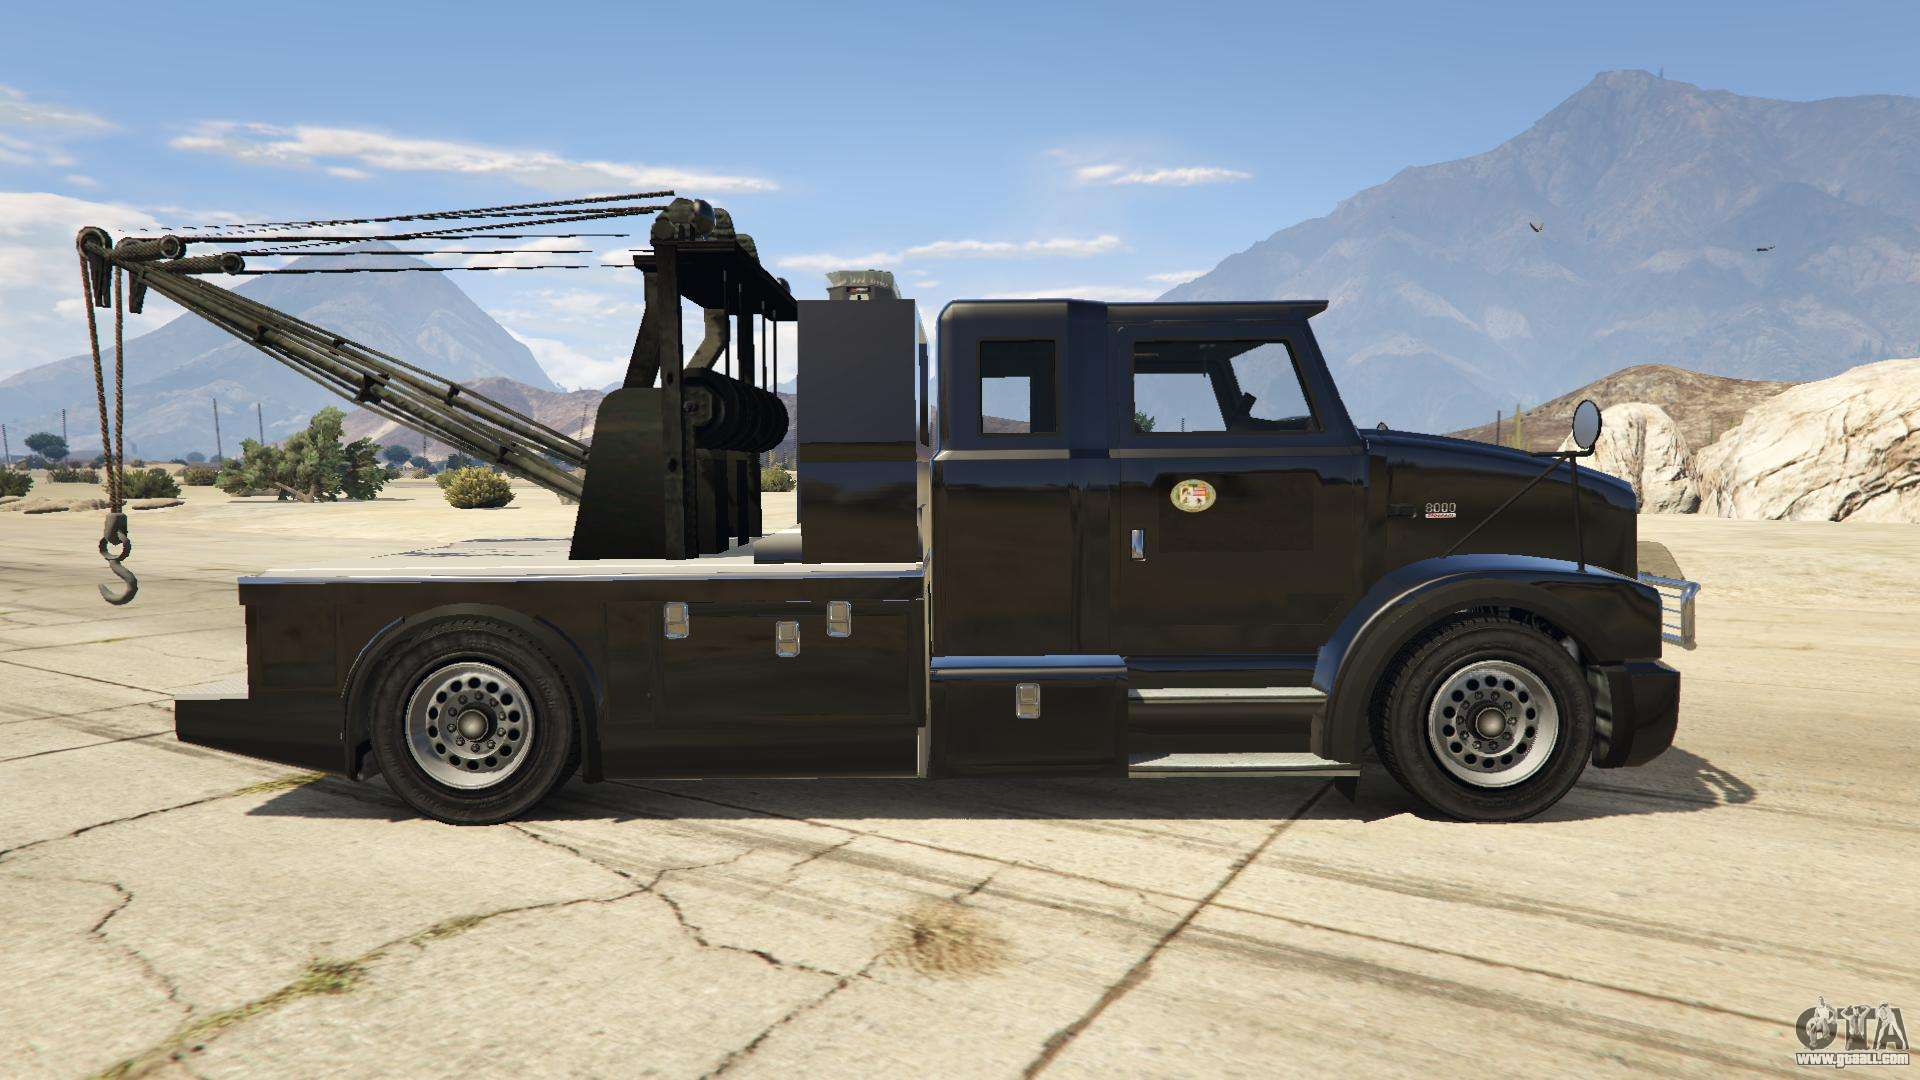 Trophy Truck Gta 5 >> Police Towtruck for GTA 5